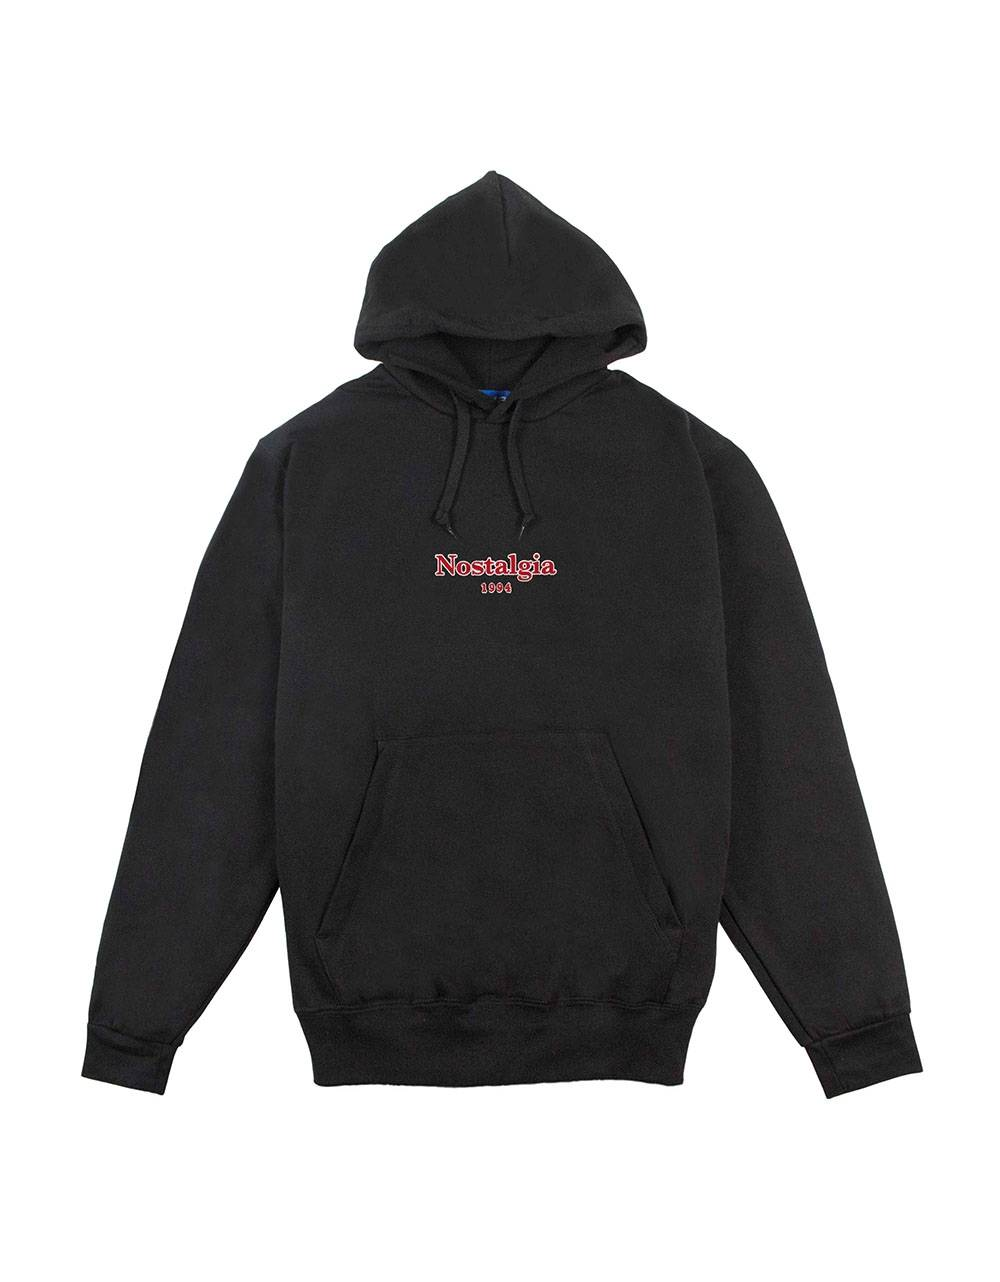 Usual Nostalgia outline hoodie - Black Usual Sweater 81,97€